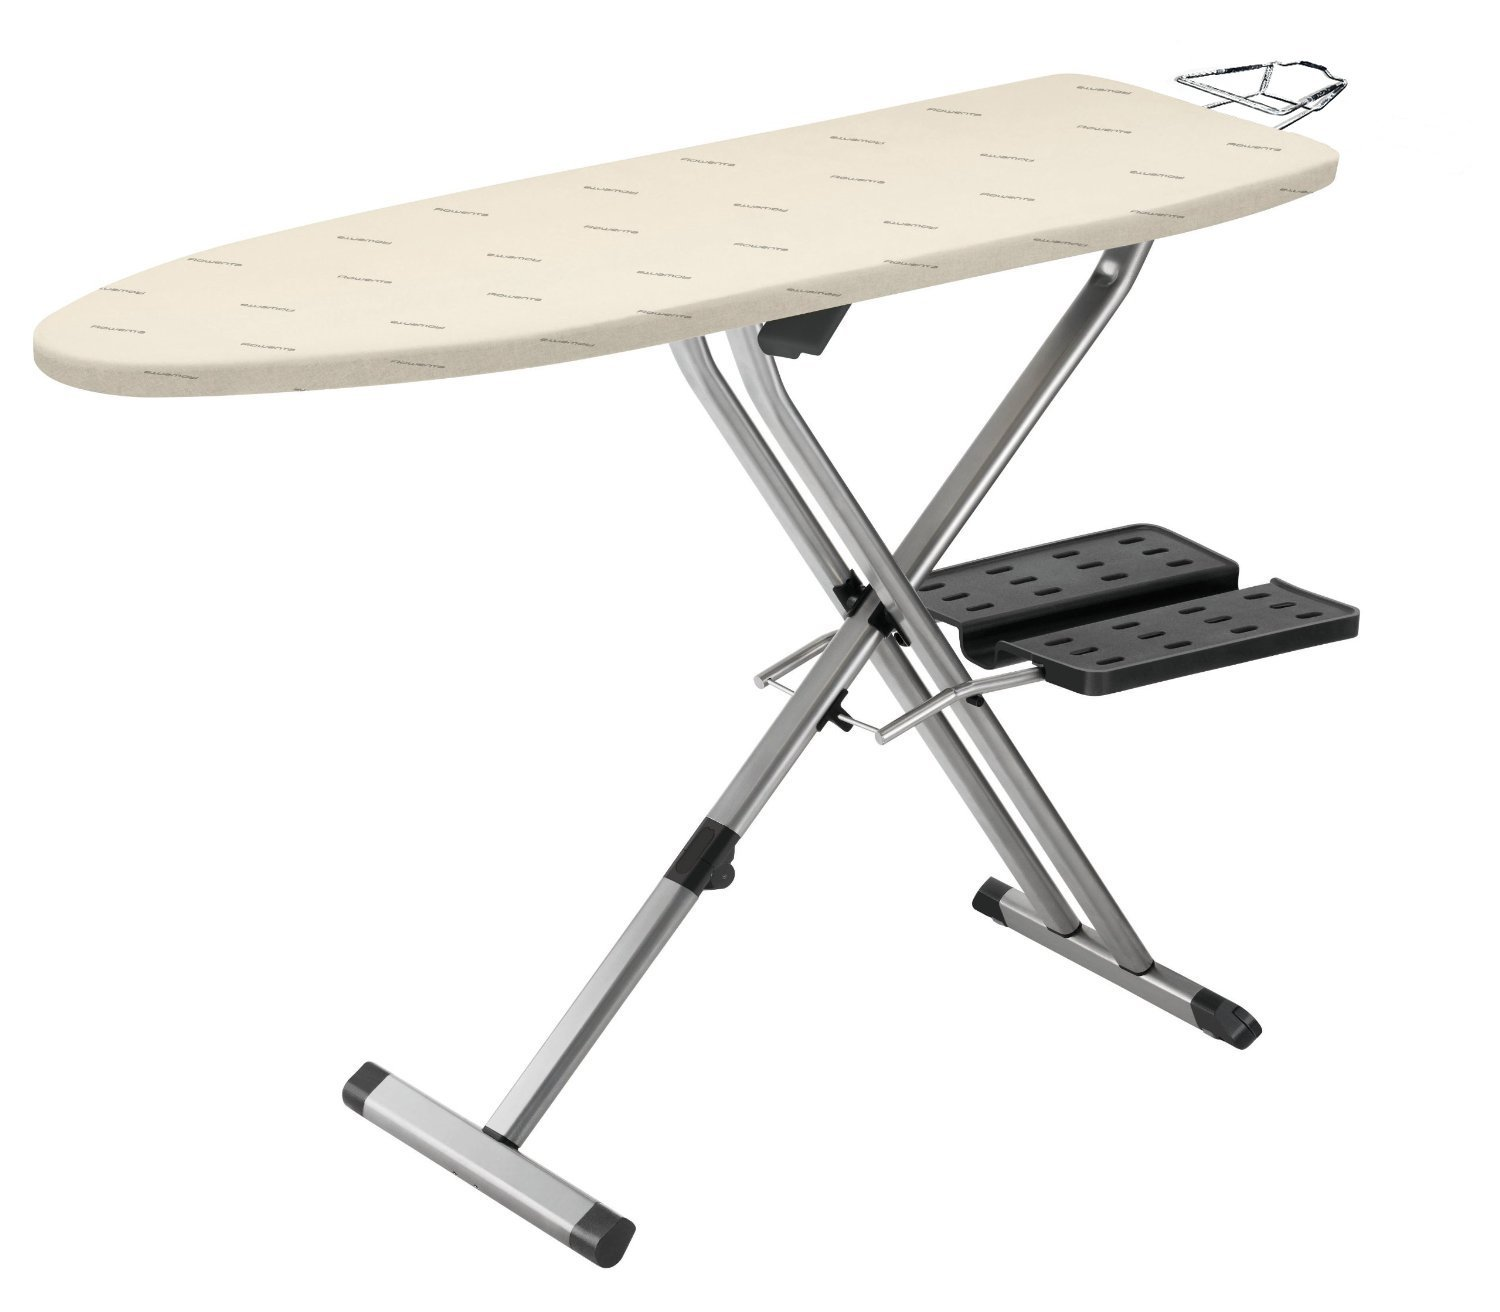 How to choose the right ironing board